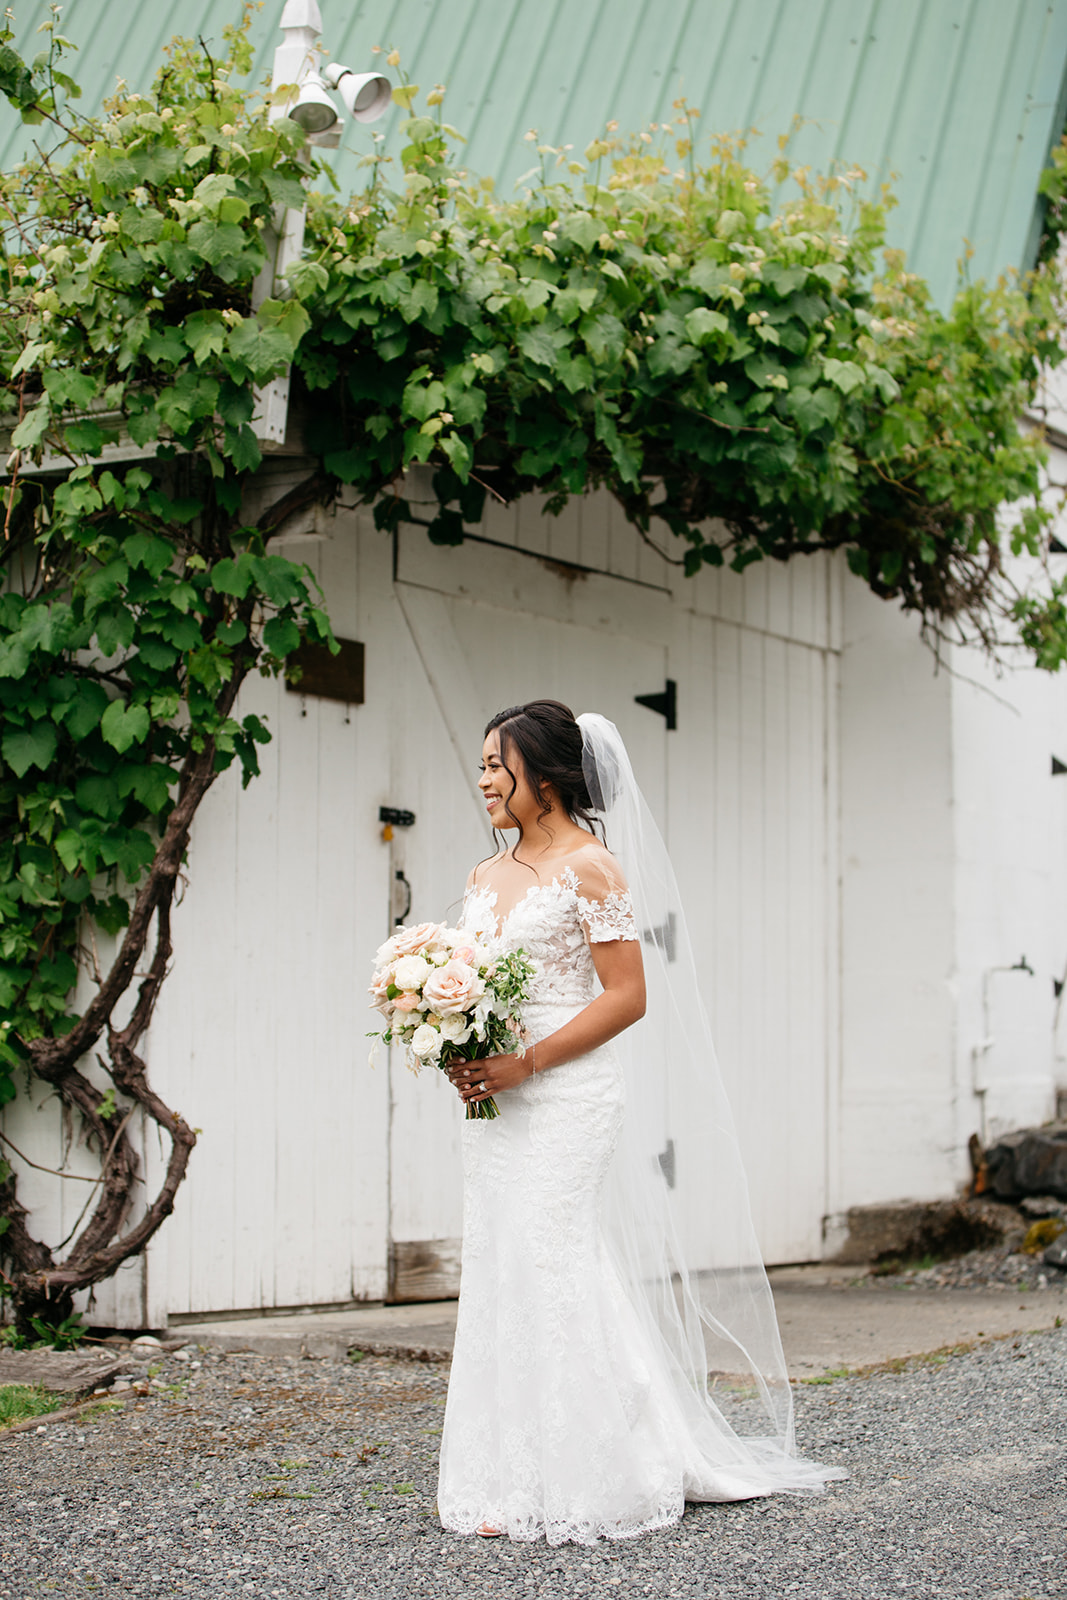 Desiree Hartsock Bridal Gown - Romantic wedding dress in ivory - bridal portrait at Chateau Lill - copyright @emmasedition